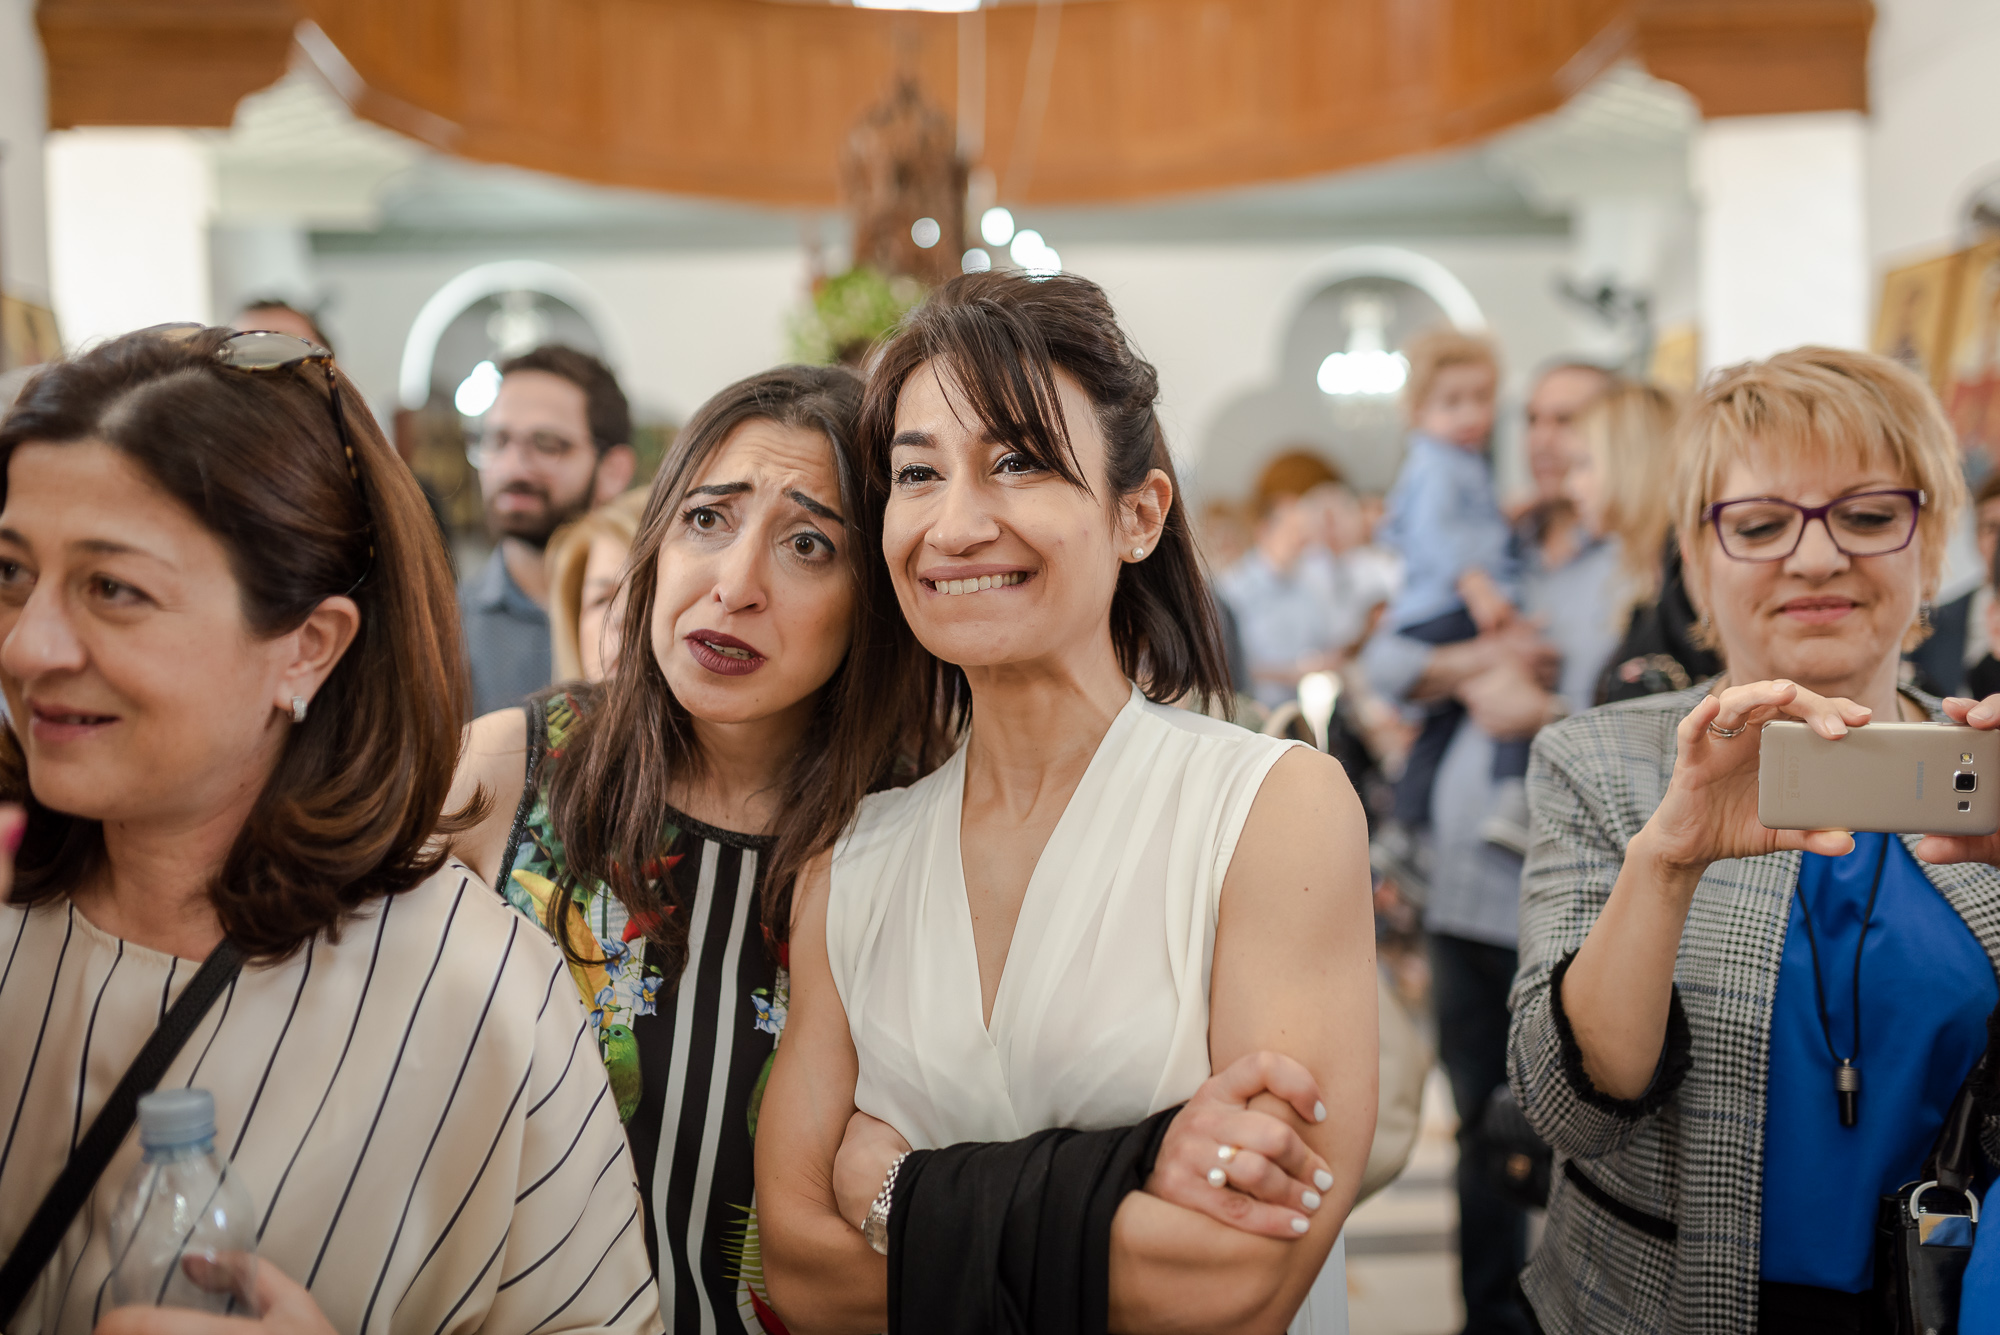 Christening cyprus βαπτιση  κυπρος guests funny faces.jpg